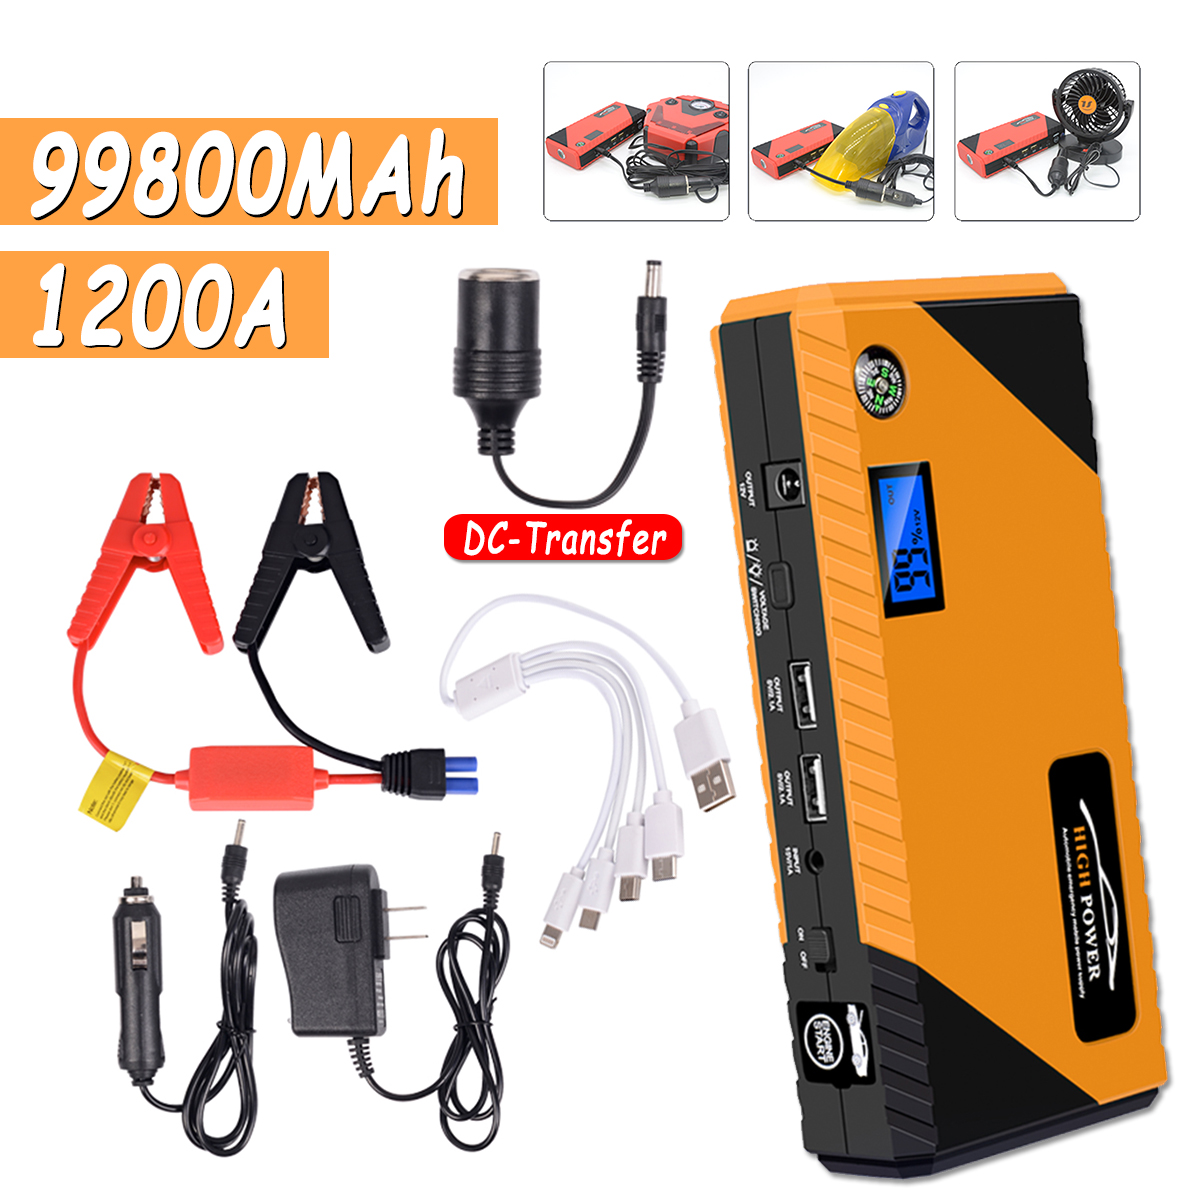 JX31 Display 98600mAh 12V Car Jump Starter Portable USB Emergency Power Bank Battery Booster Clamp 1000A DC Port Yellow